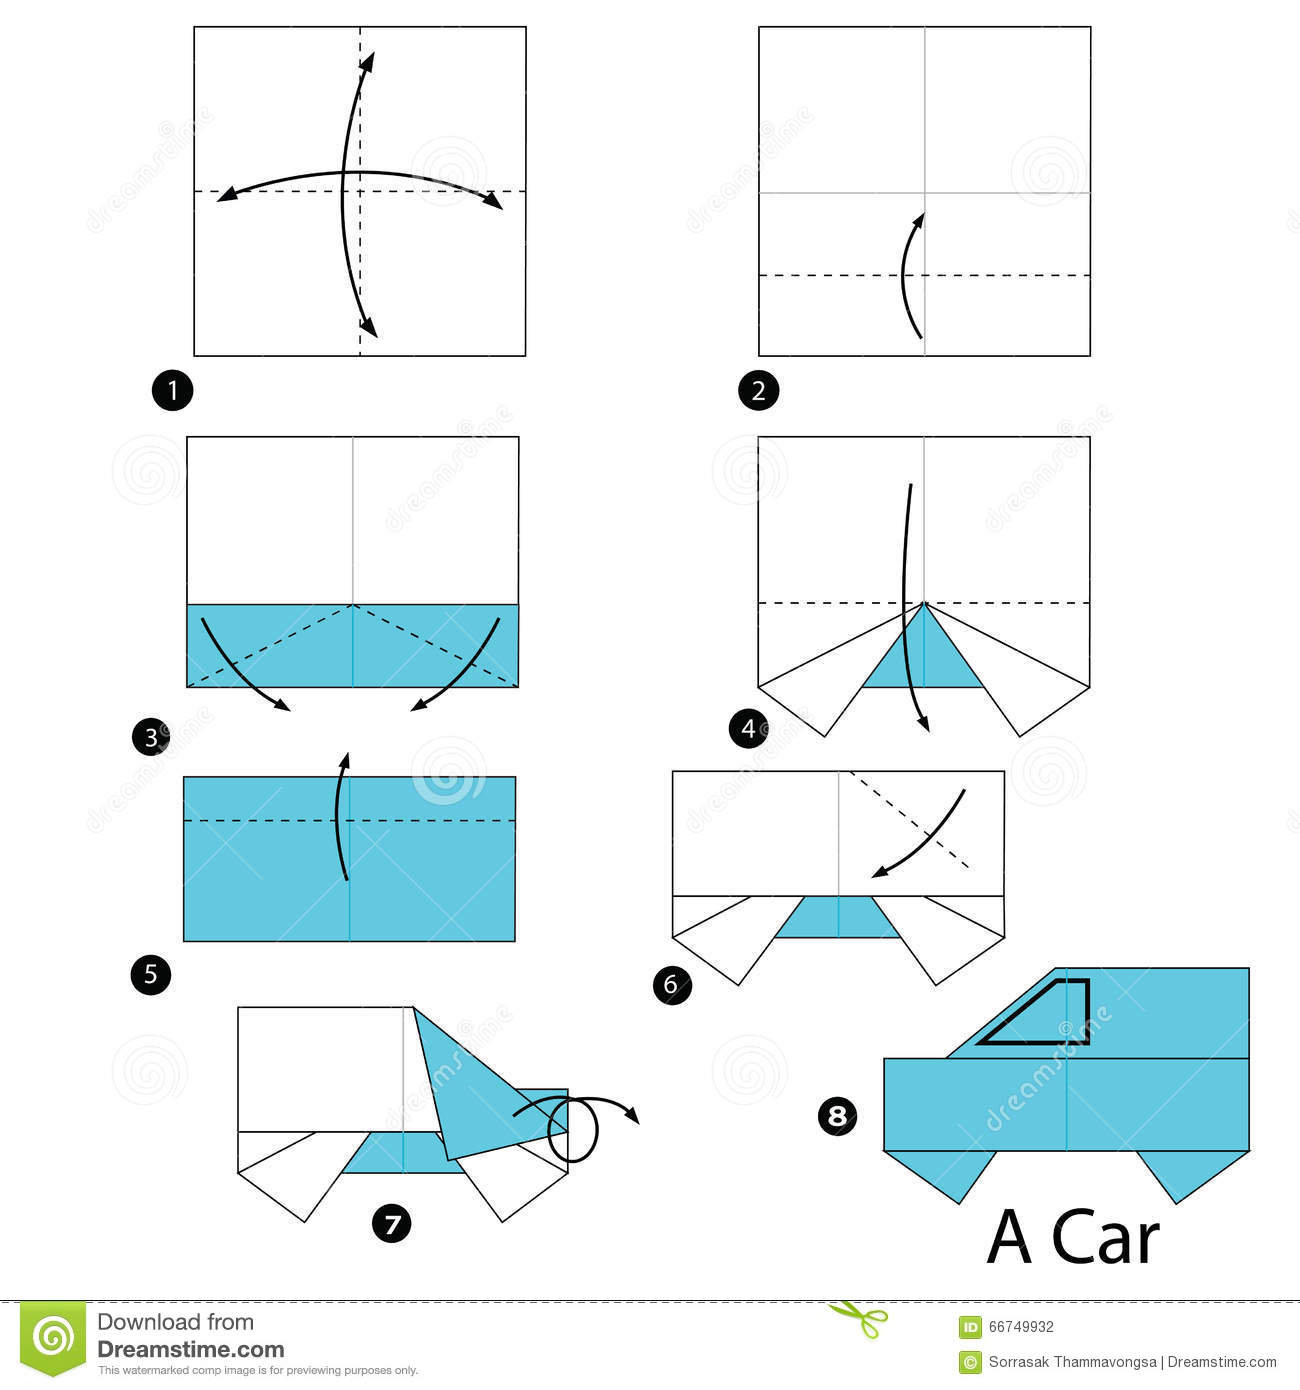 hight resolution of instructionseasy origami carorigami car diagramcar origamiorigami origami carorigami car diagramcar origamiorigami car diagramsmoney